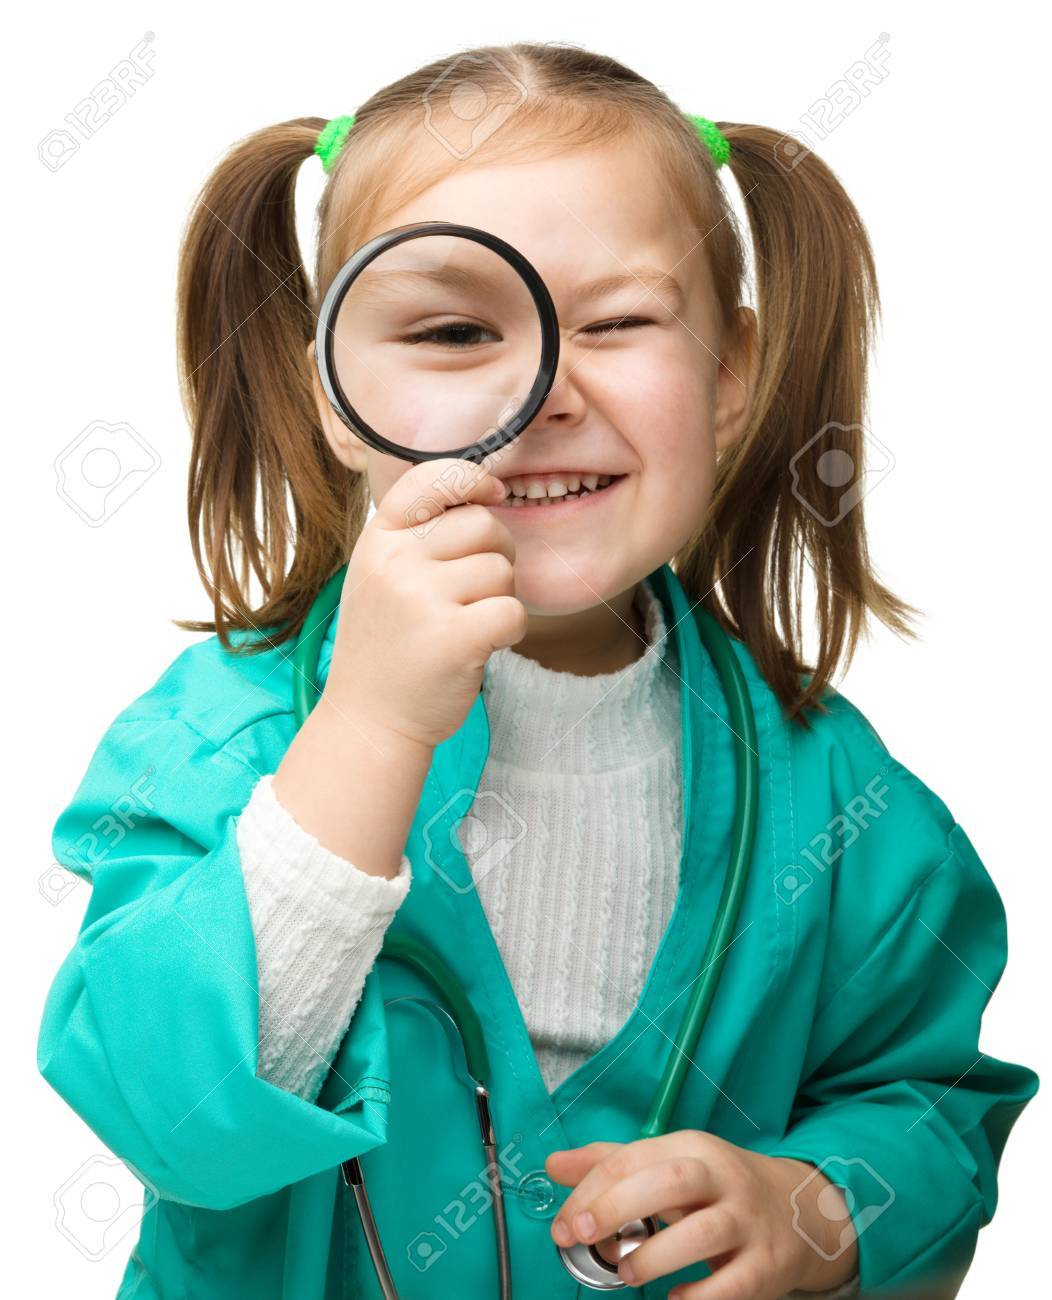 Cute little girl is playing doctor with magnifier, isolated over white Stock Photo - 18730342